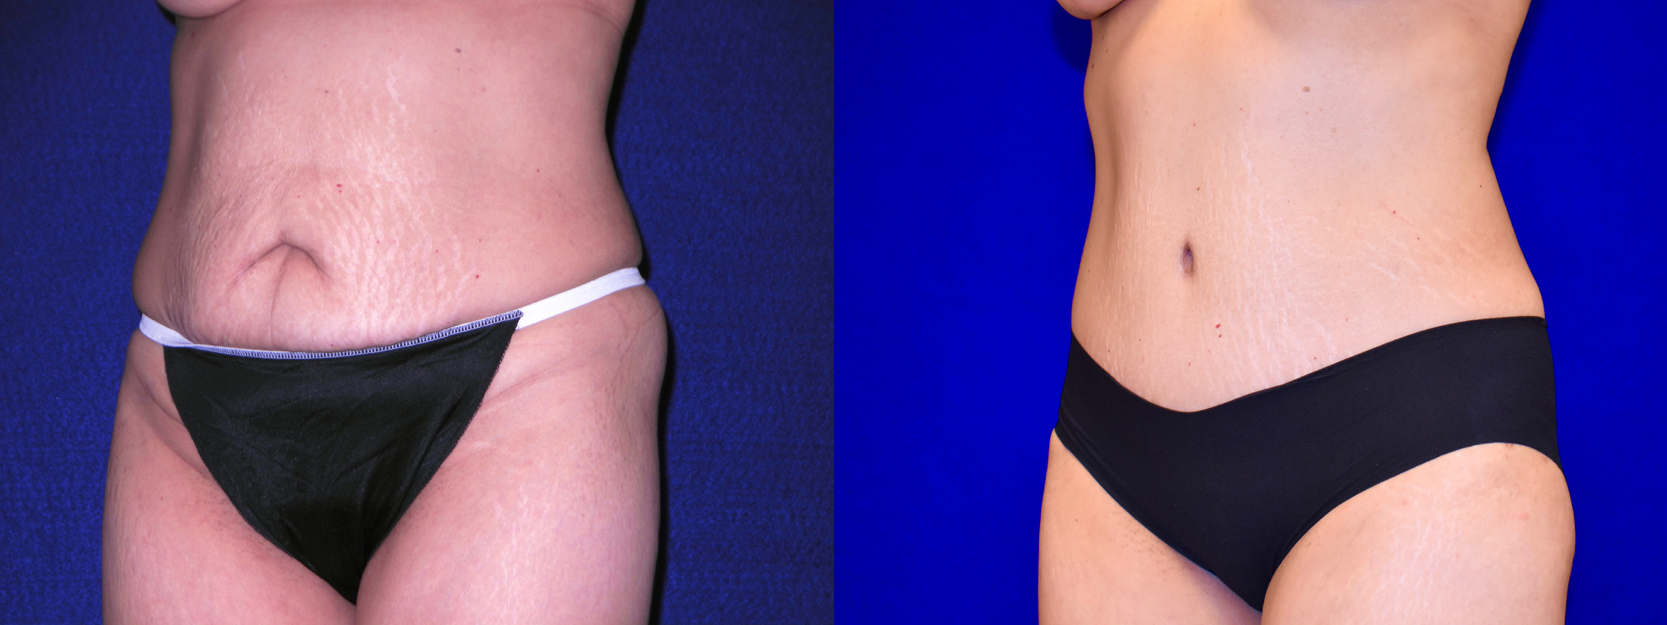 Left 3/4 View - Tummy Tuck